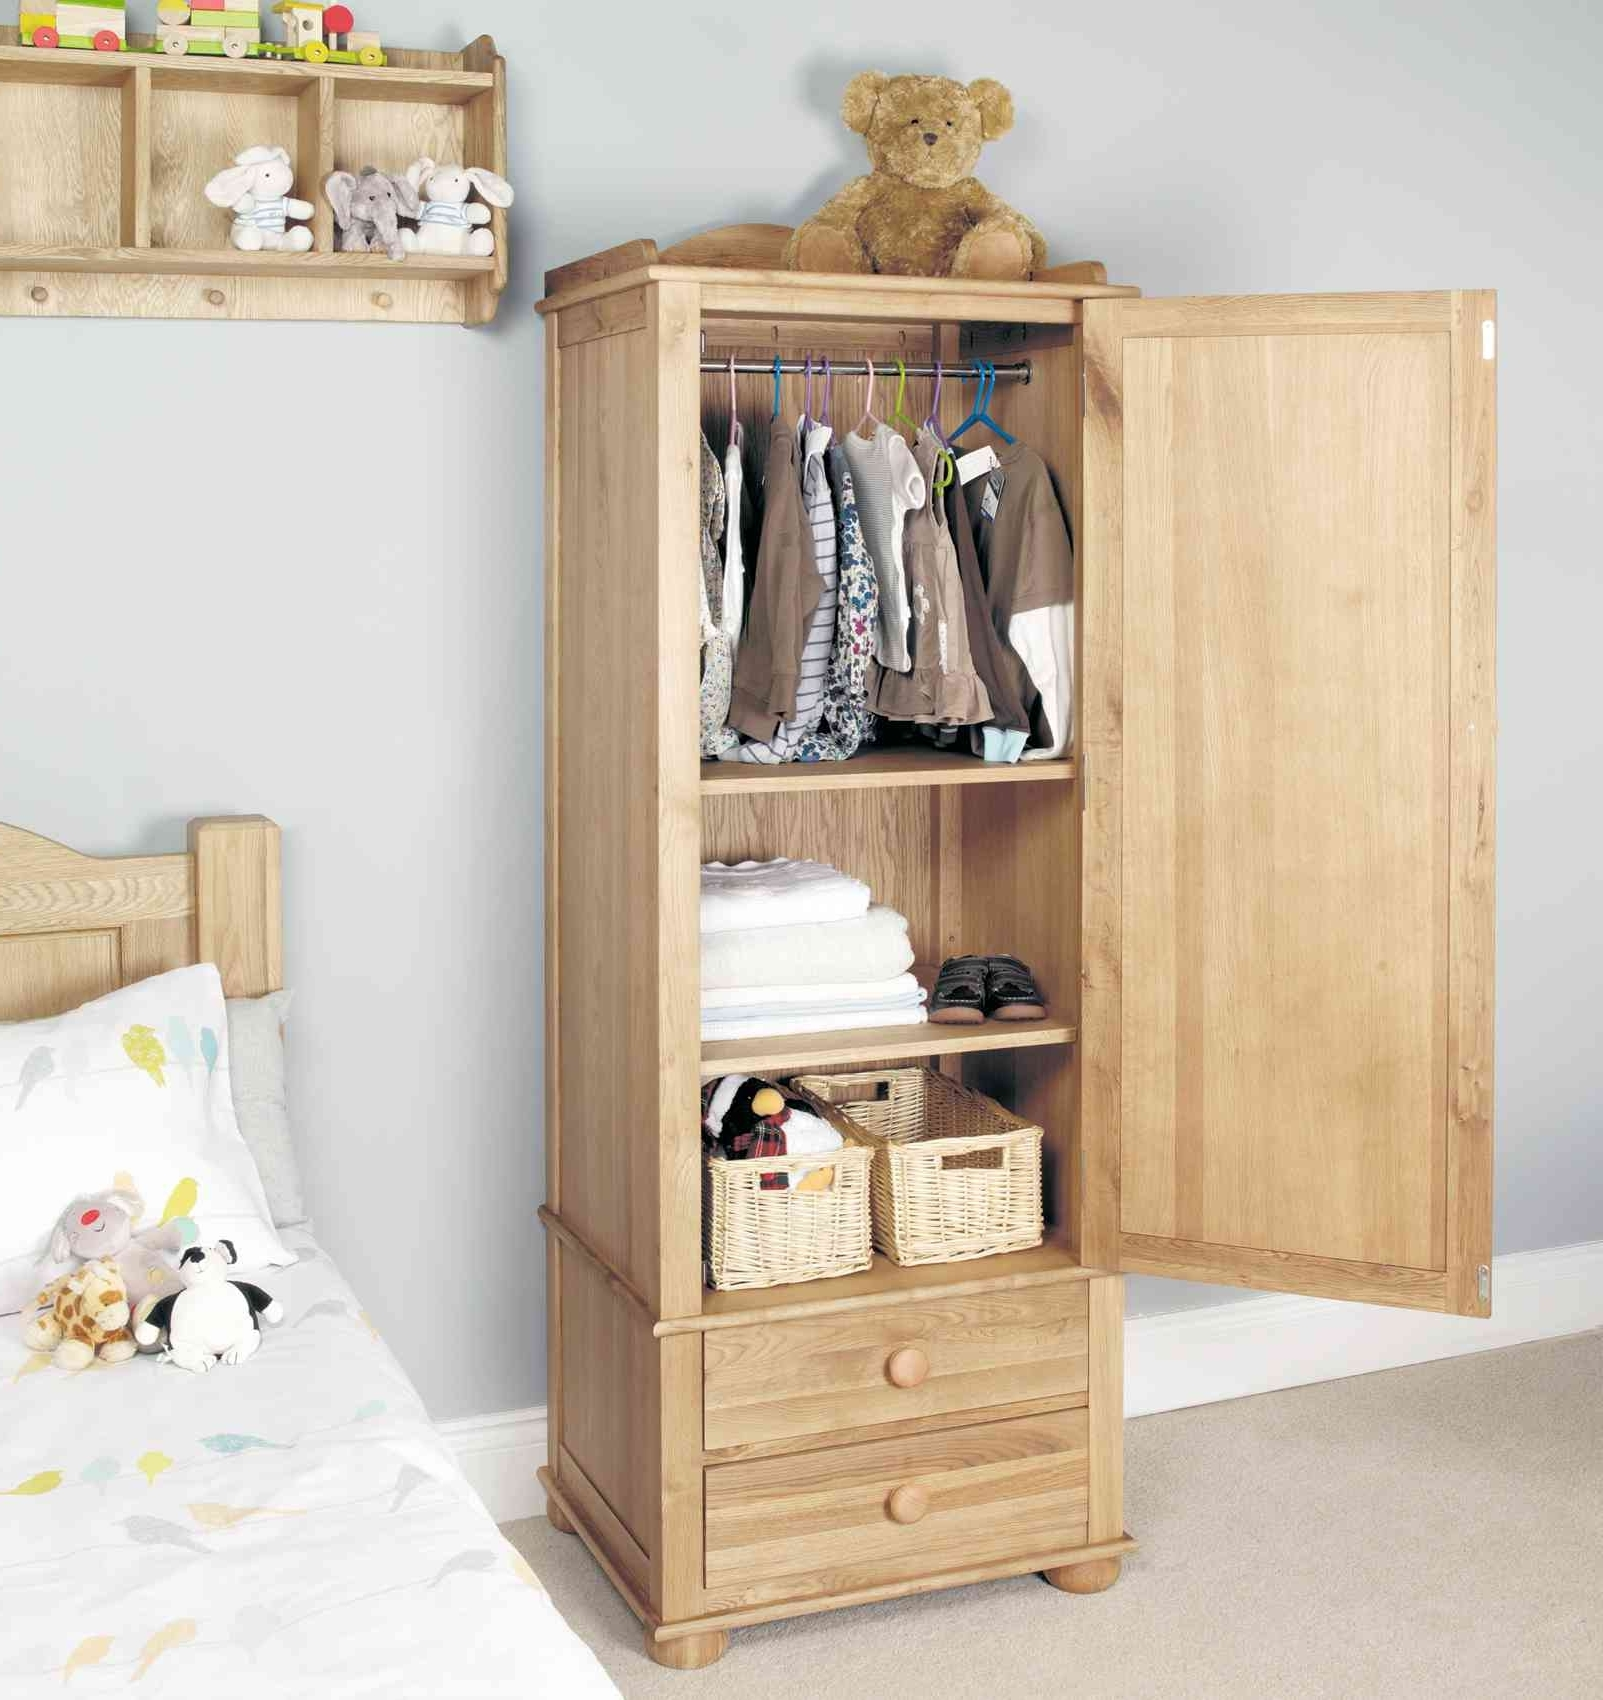 Single Wardrobes With Drawers And Shelves Within Most Current If You Have A Tiny Wardrobe Start Hanging Your Clothes Vertically (View 13 of 15)